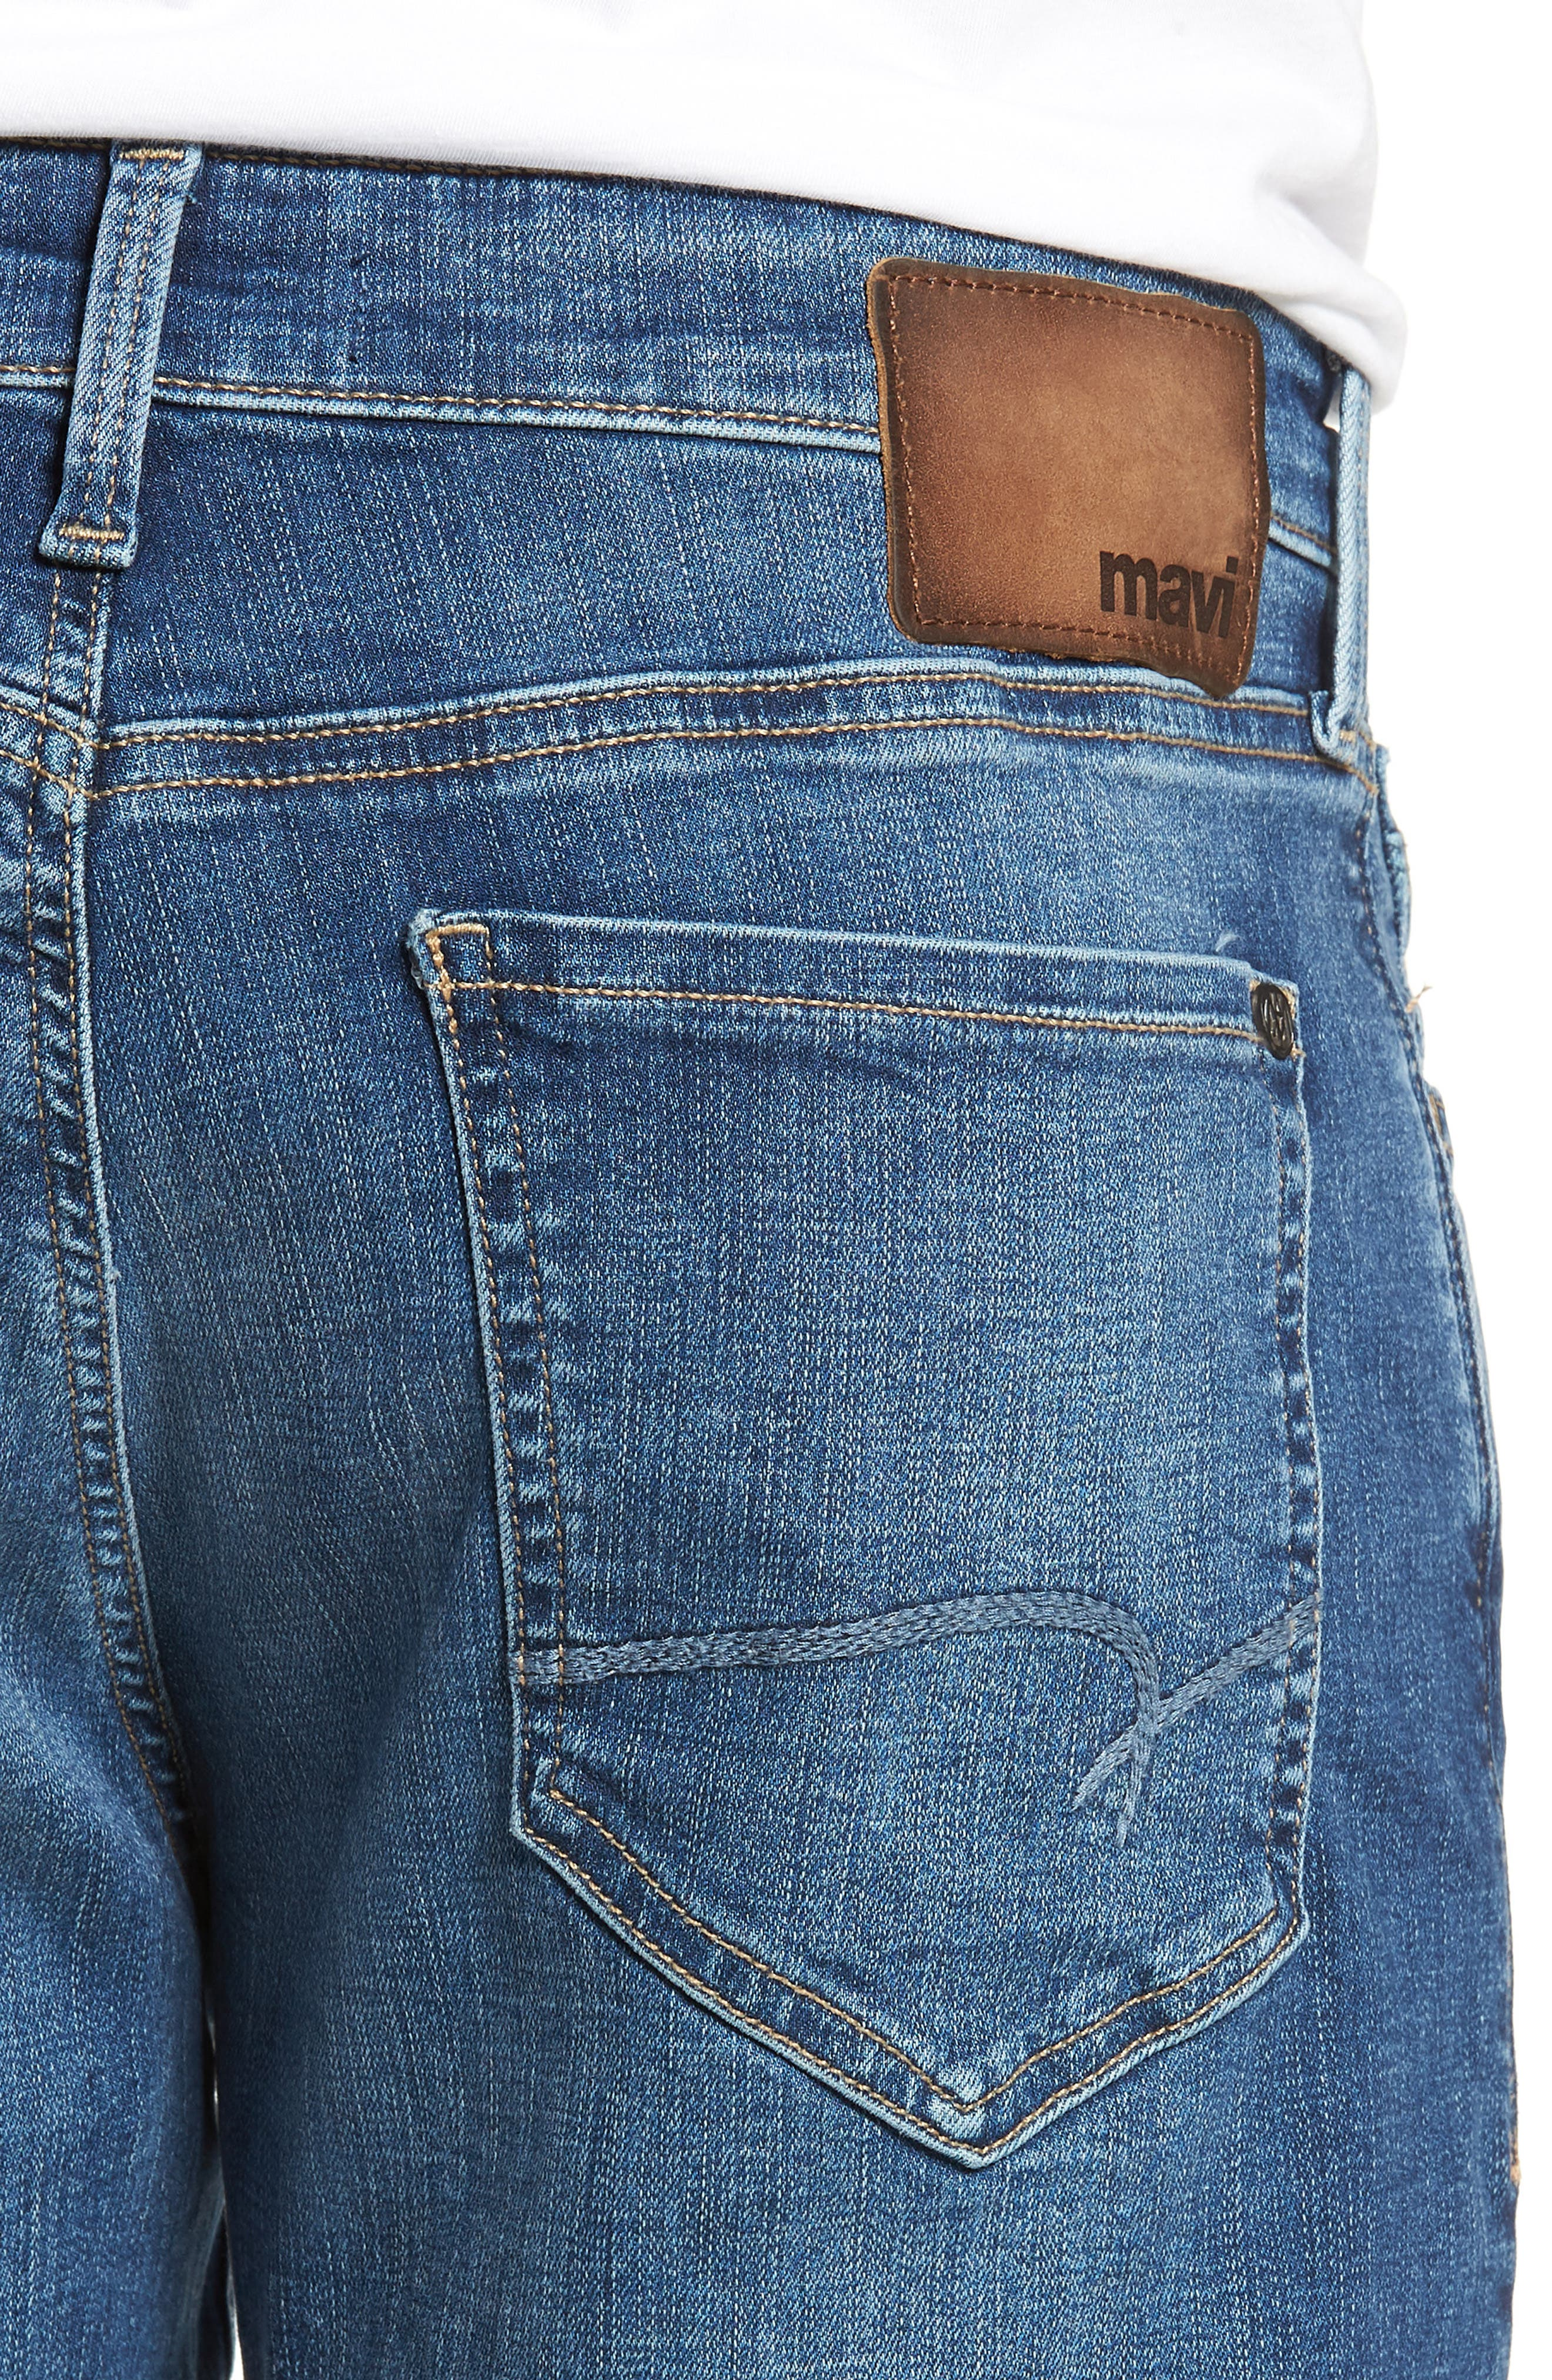 Matt Relaxed Straight Leg Jeans,                             Alternate thumbnail 4, color,                             MID BRUSHED CASHMERE